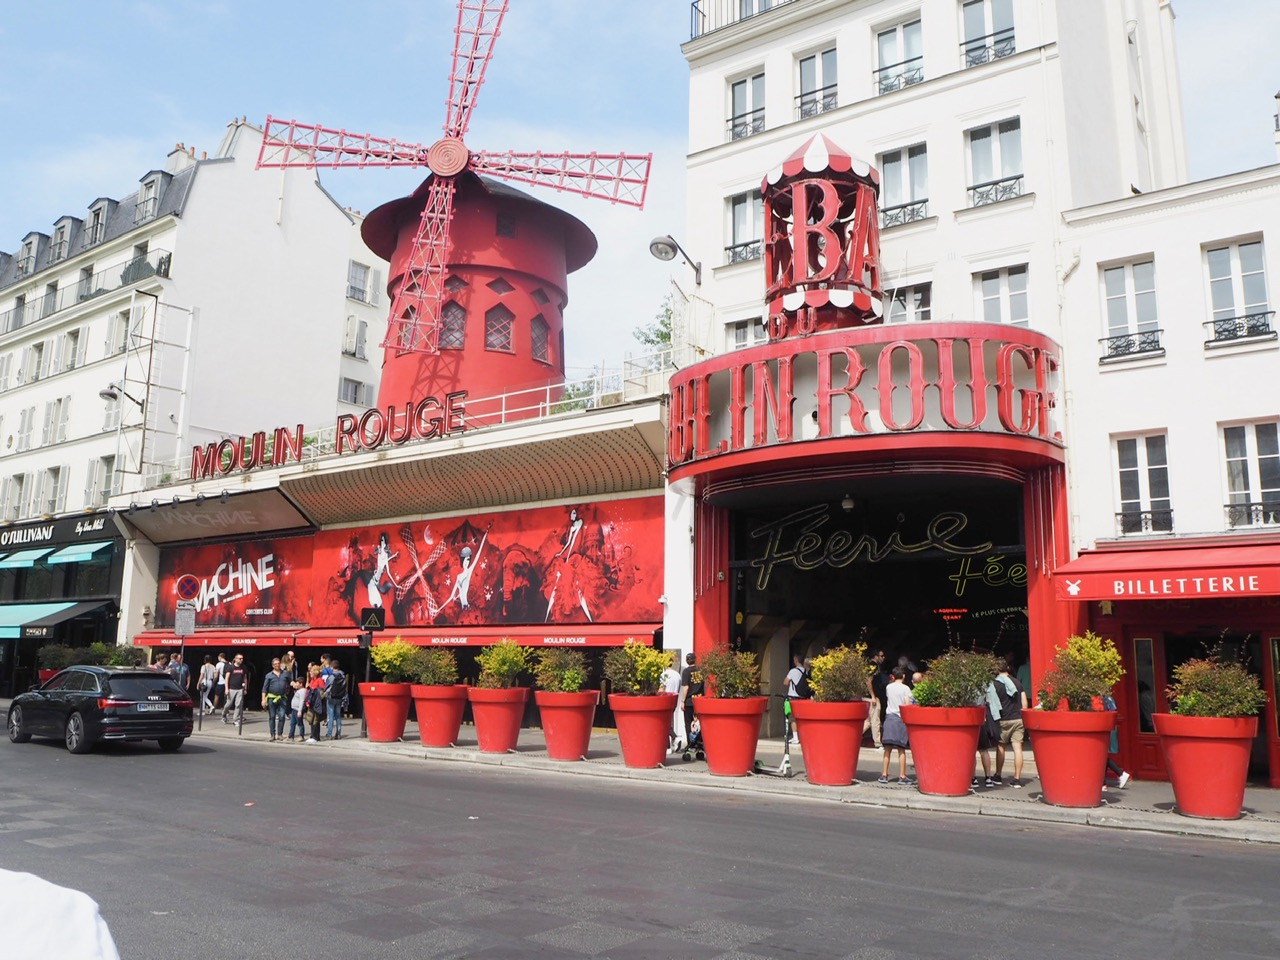 Moulin Rogue, three days in Paris